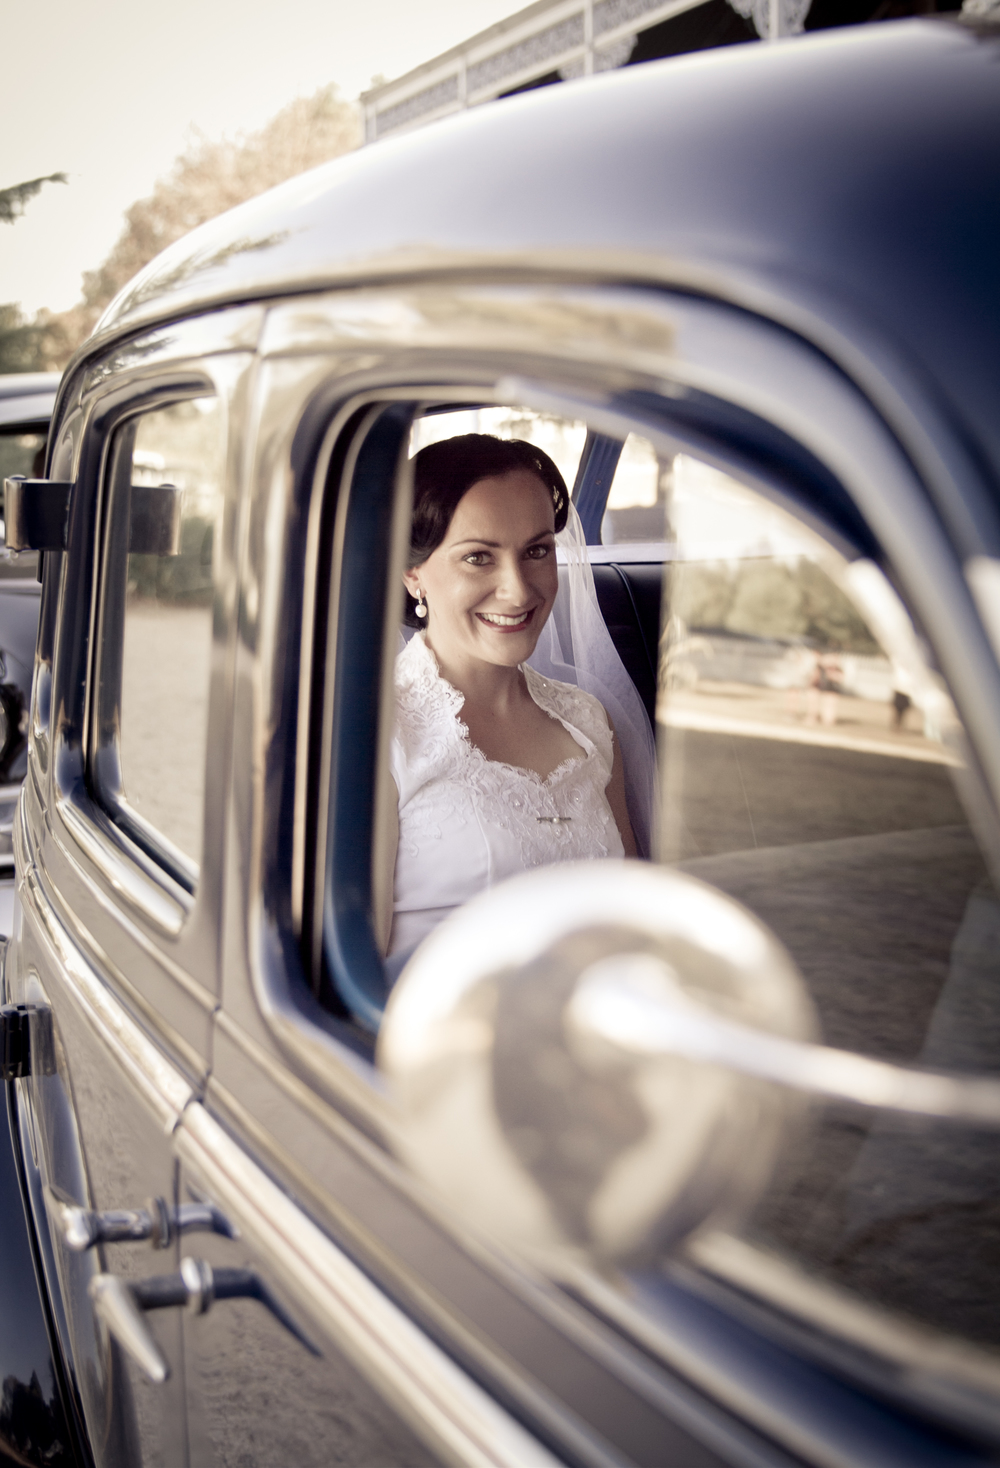 1 Bride in Wedding Car.jpg